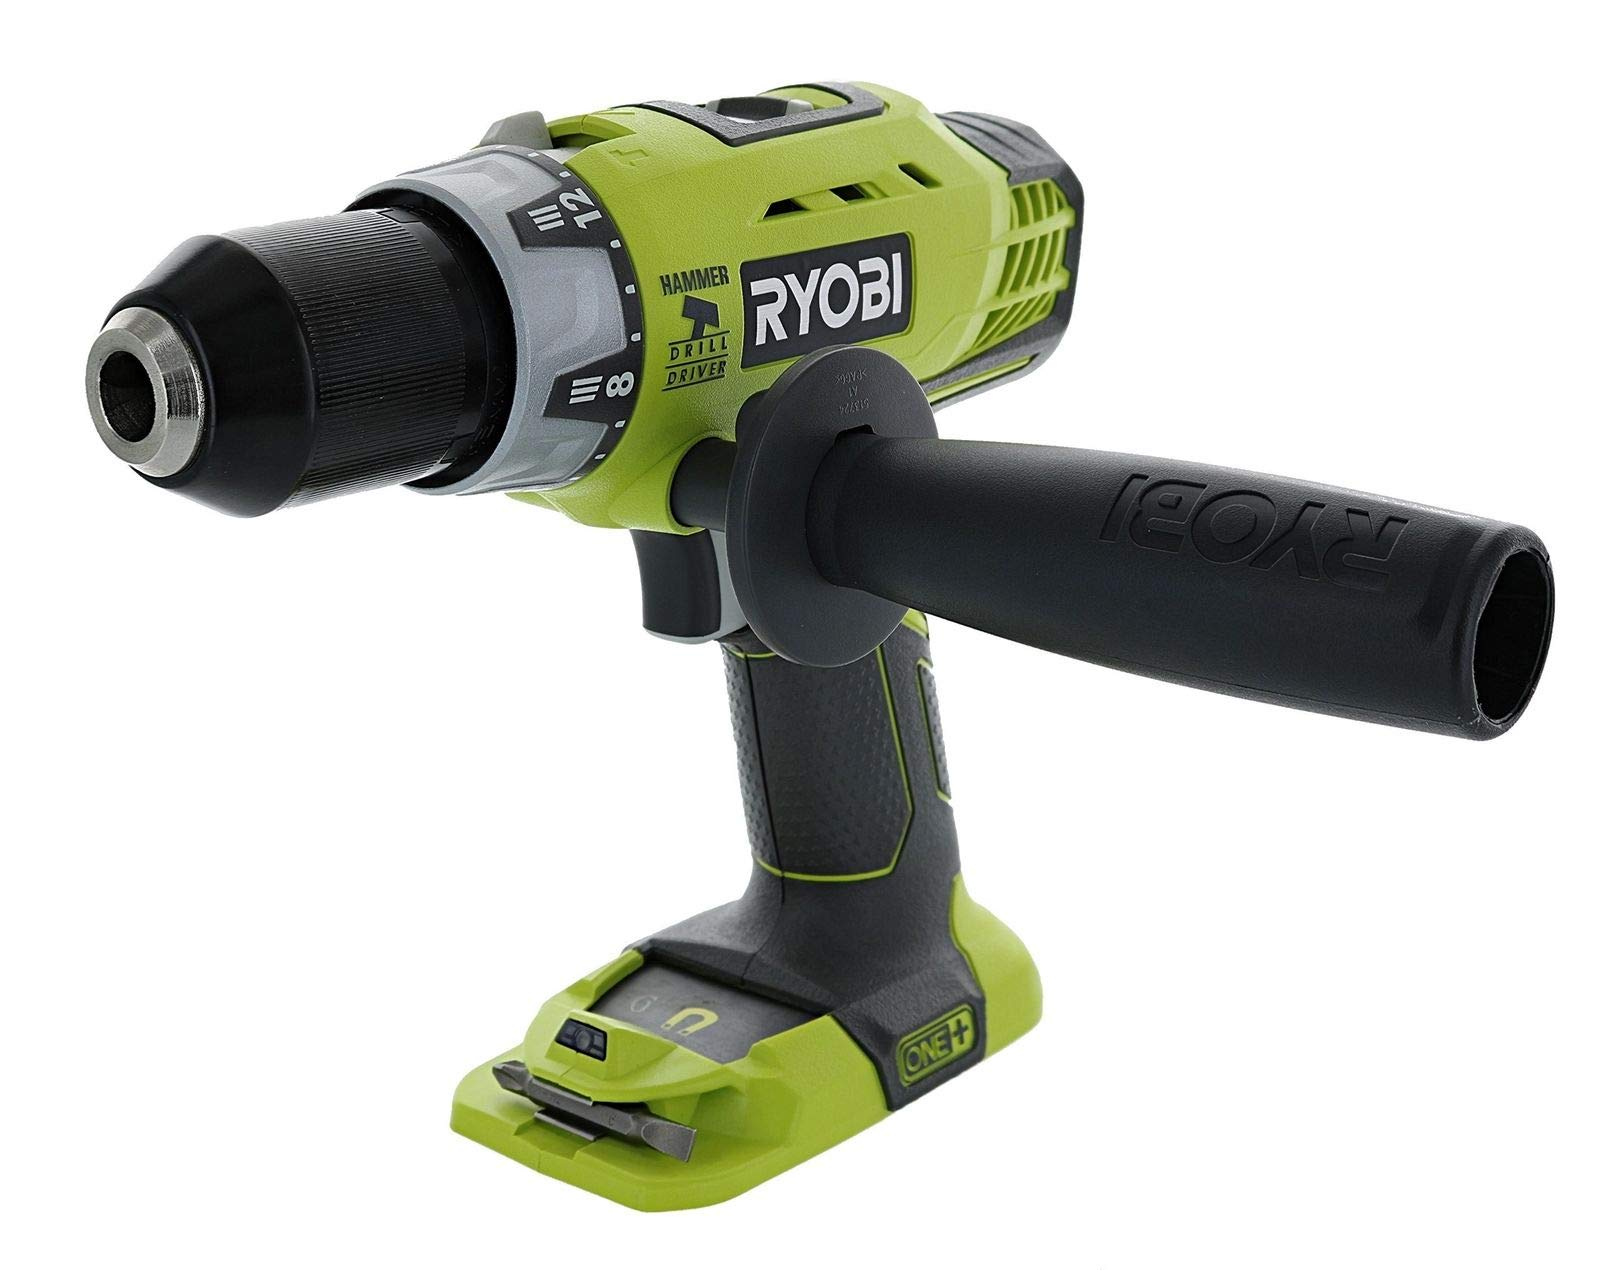 Ryobi P214 One+ 18 Volt Lithium Ion 1/2 Inch 600 Pound Torque Hammer Drill/Driver (Tool Only) with Handle (Non-Retail Packaging) by Ryobi